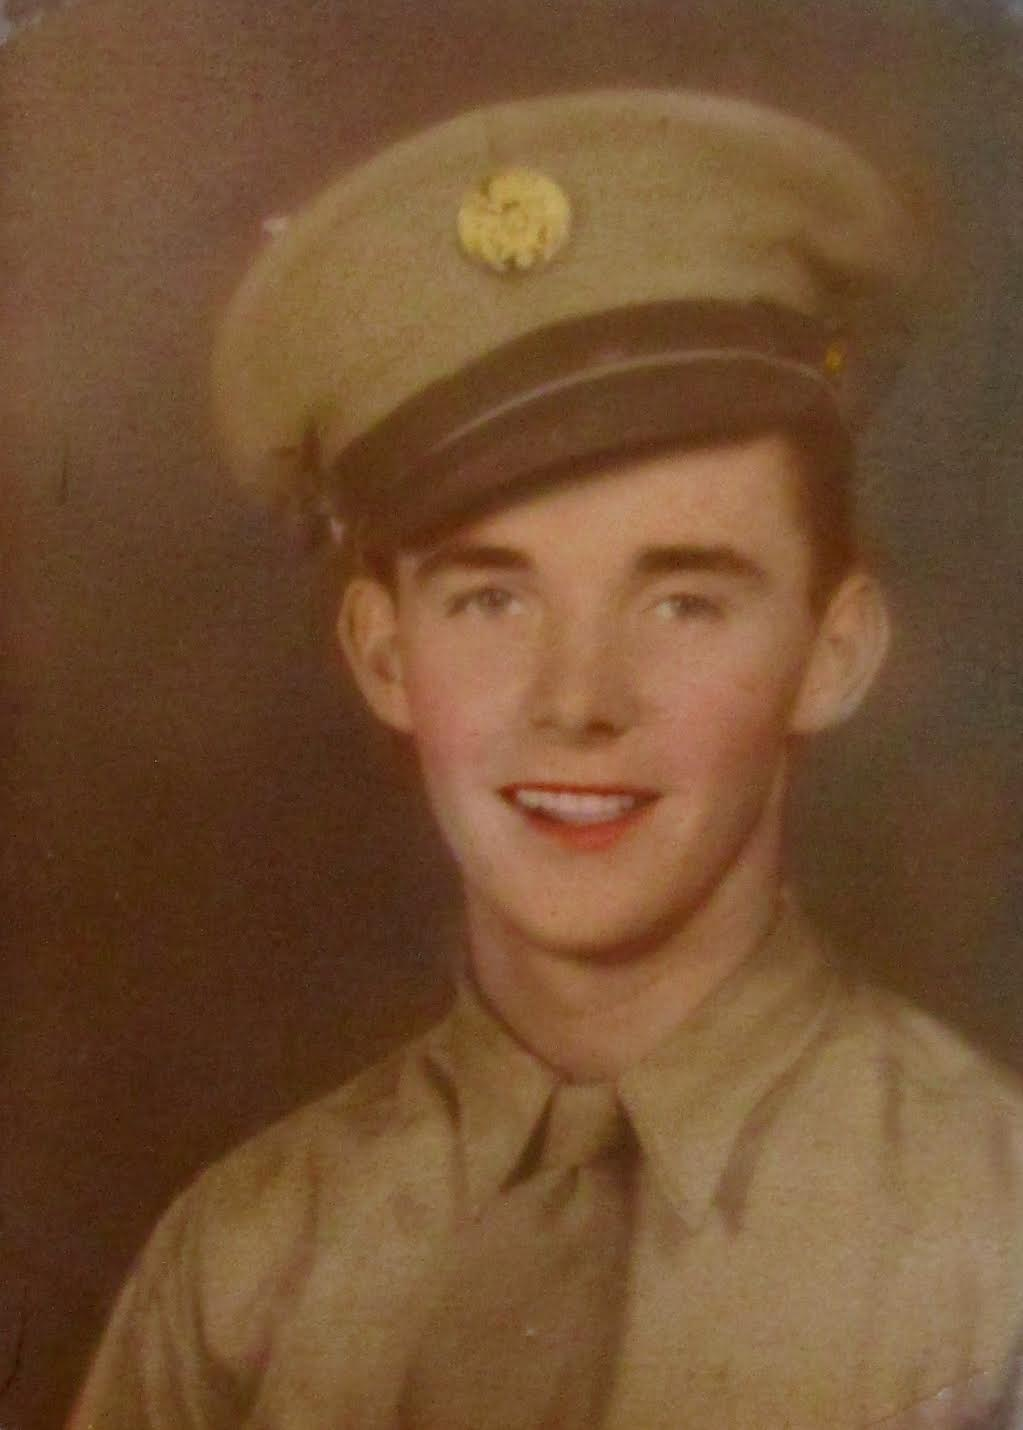 Pfc. John Coine was a rifleman with the 78th Infantry Division that fought across Europe during World War II